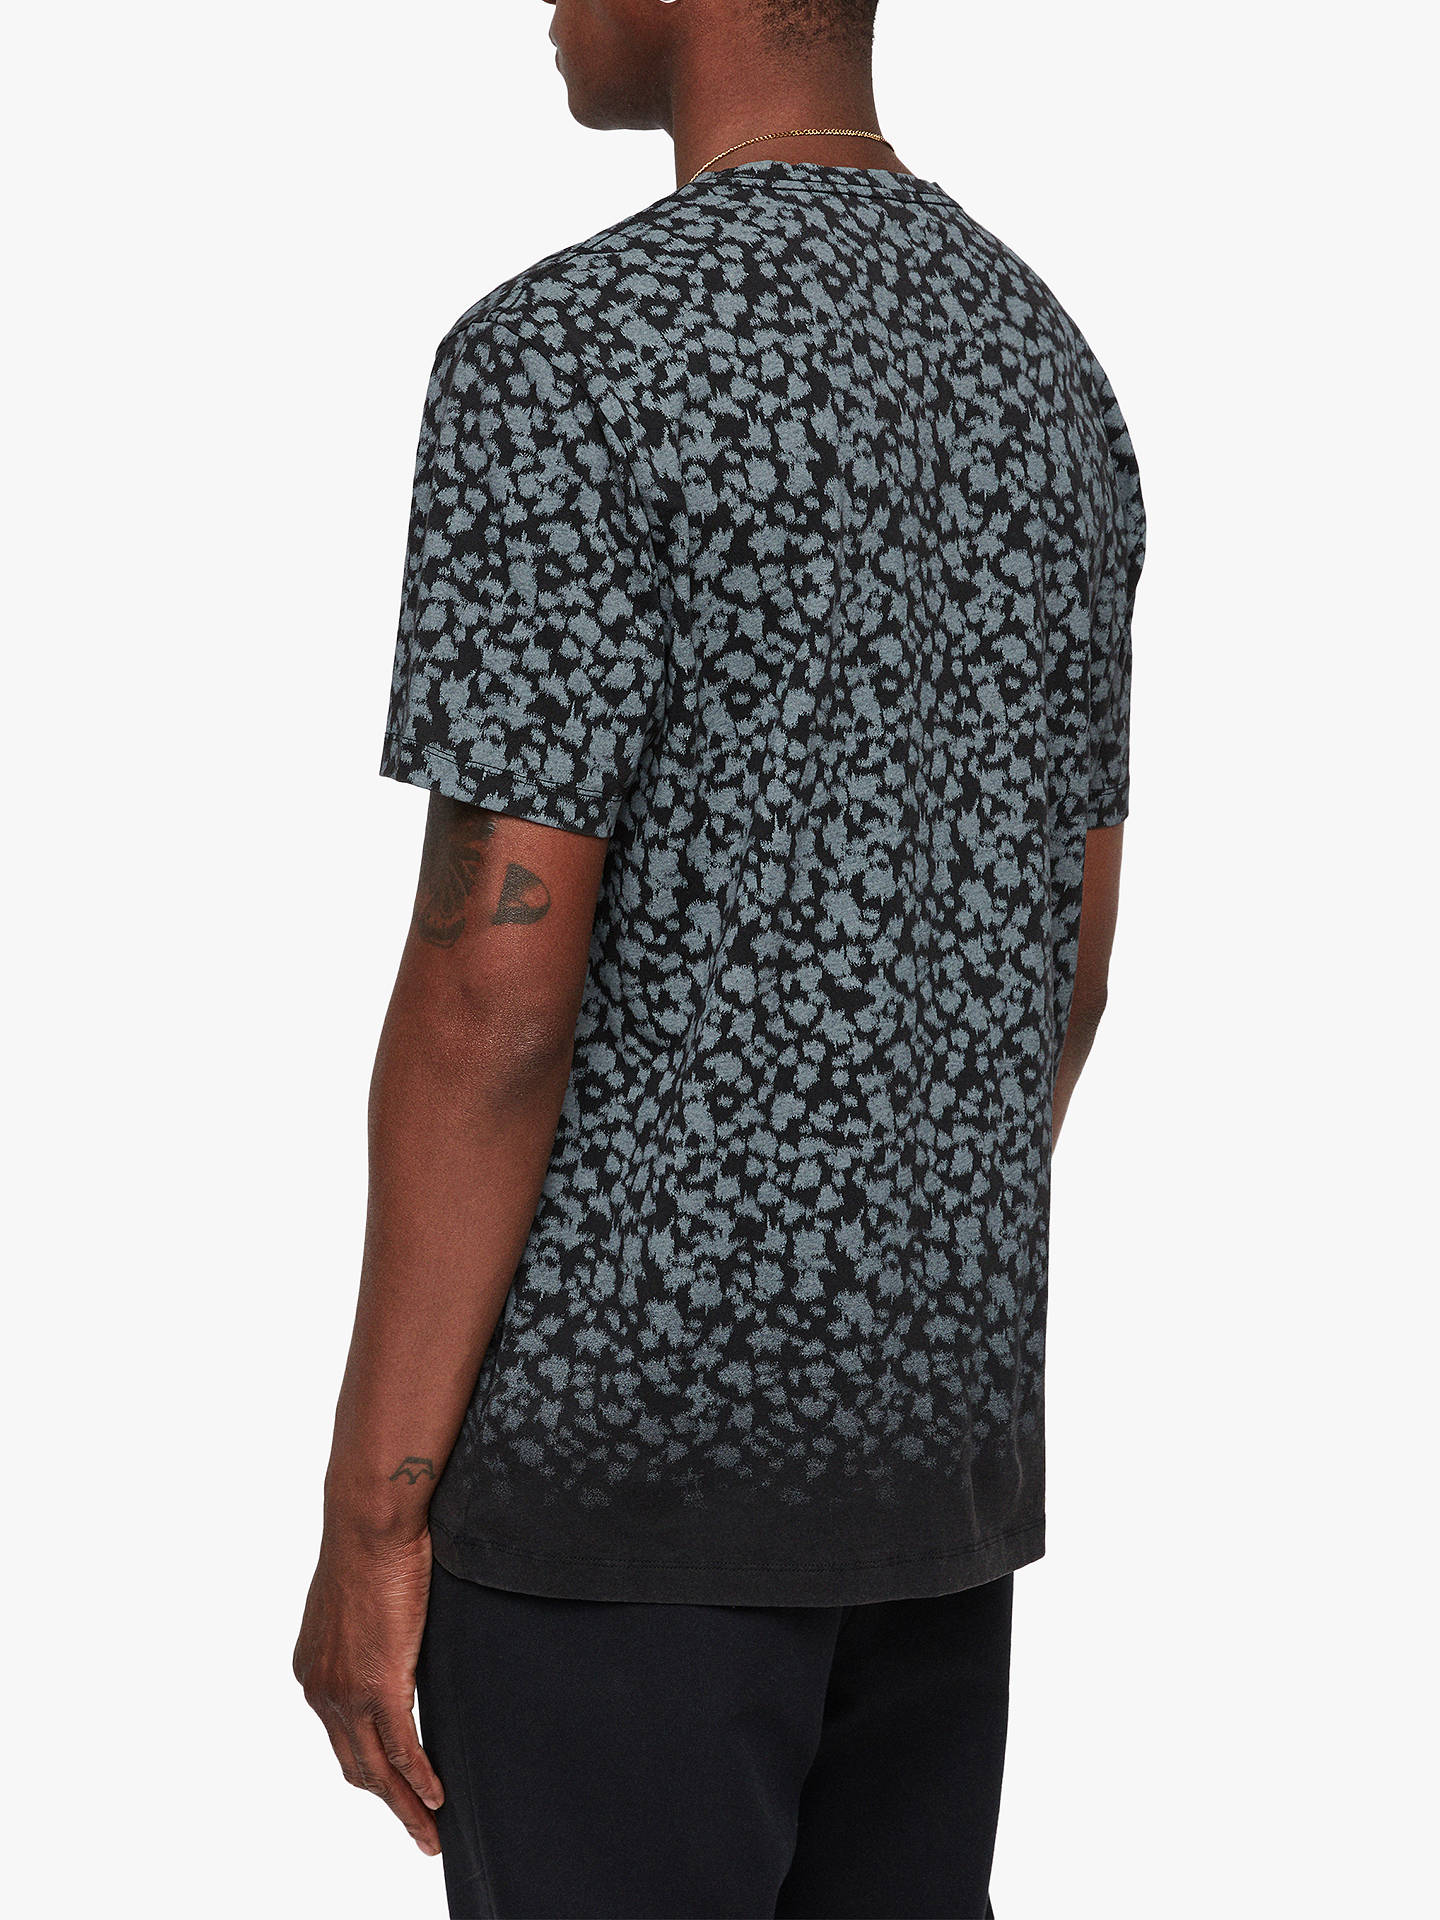 Buy AllSaints Sigfried Animal Camo T-Shirt, Vintage Black, M Online at johnlewis.com